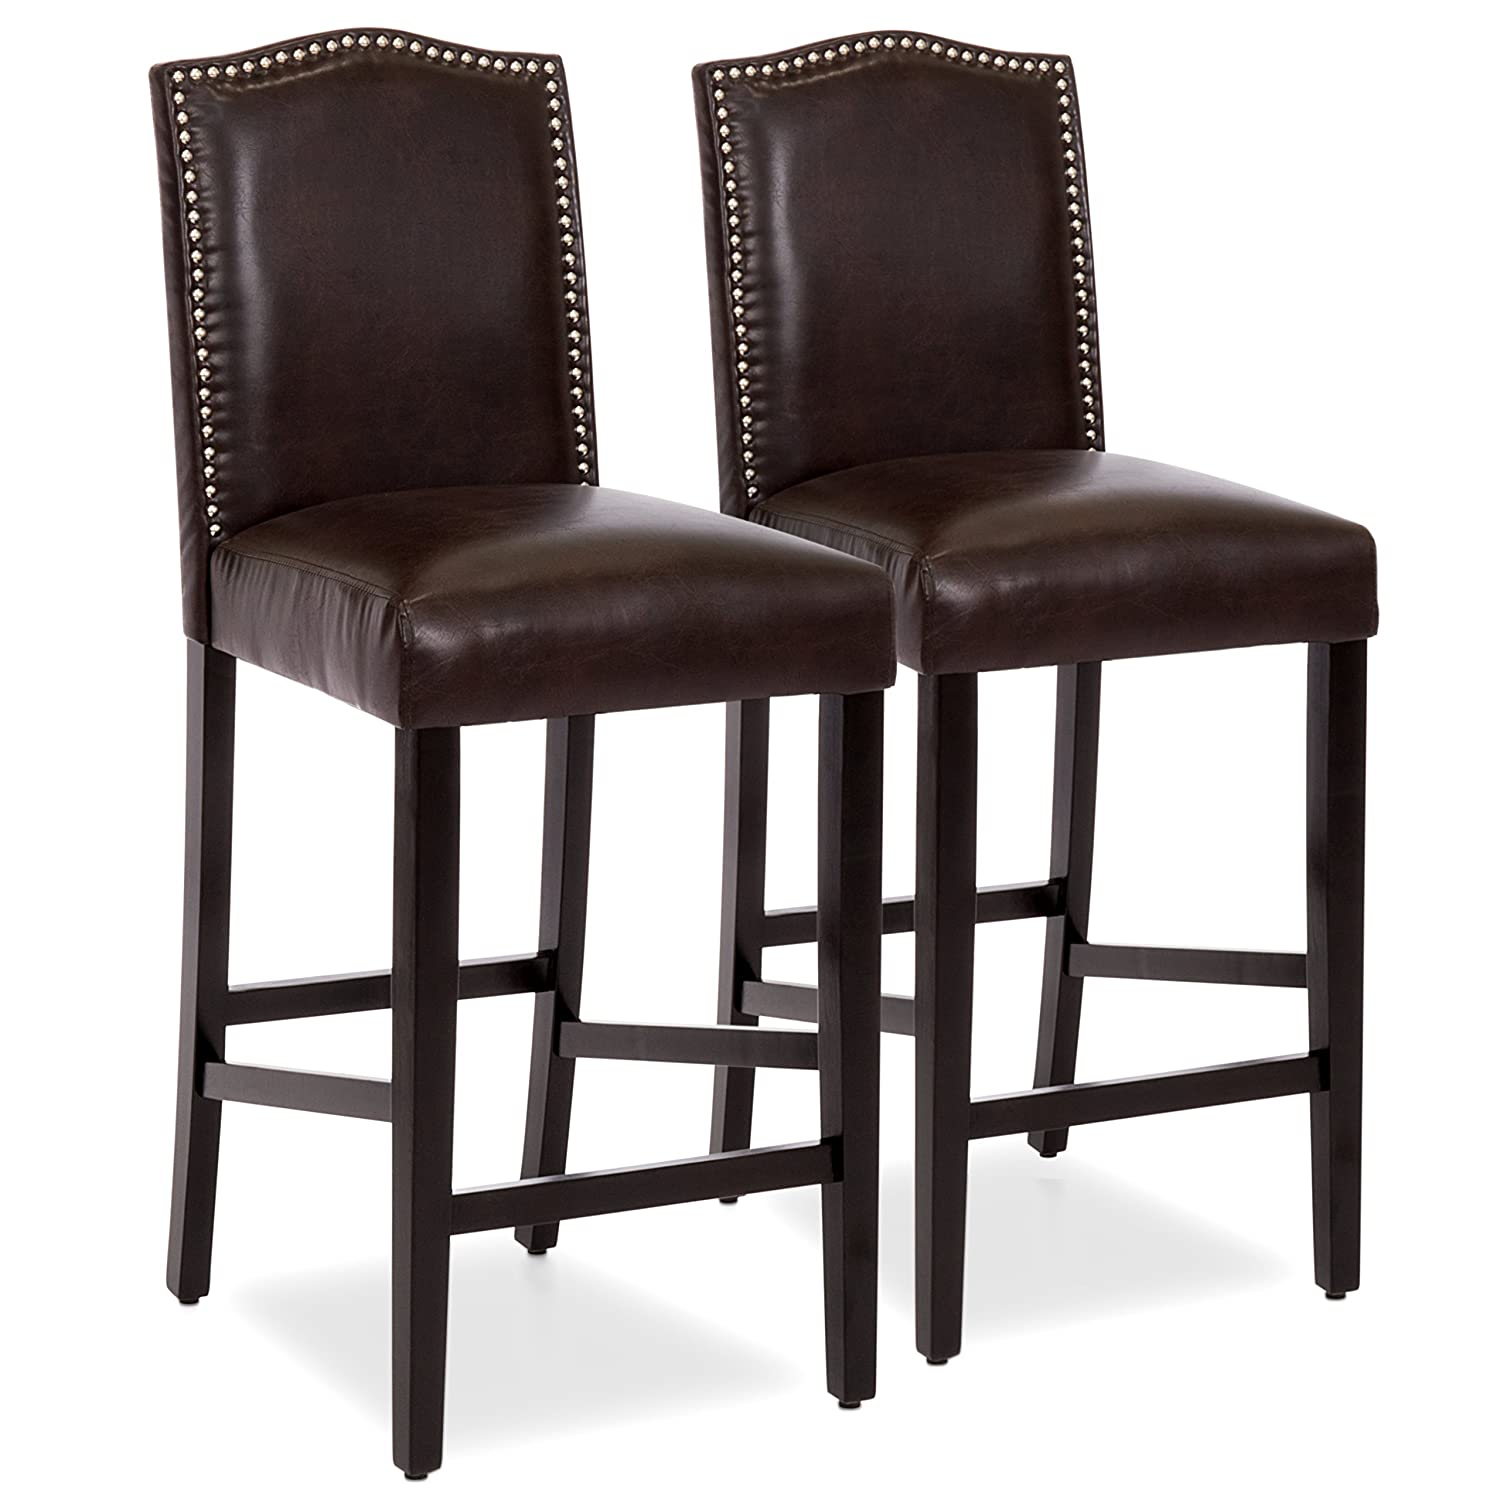 timeless design 6e534 9b209 Best Choice Products Set of 2 30in Faux Leather Counter Height Armless Bar  Stool Chairs w/Studded Trim Back - Brown